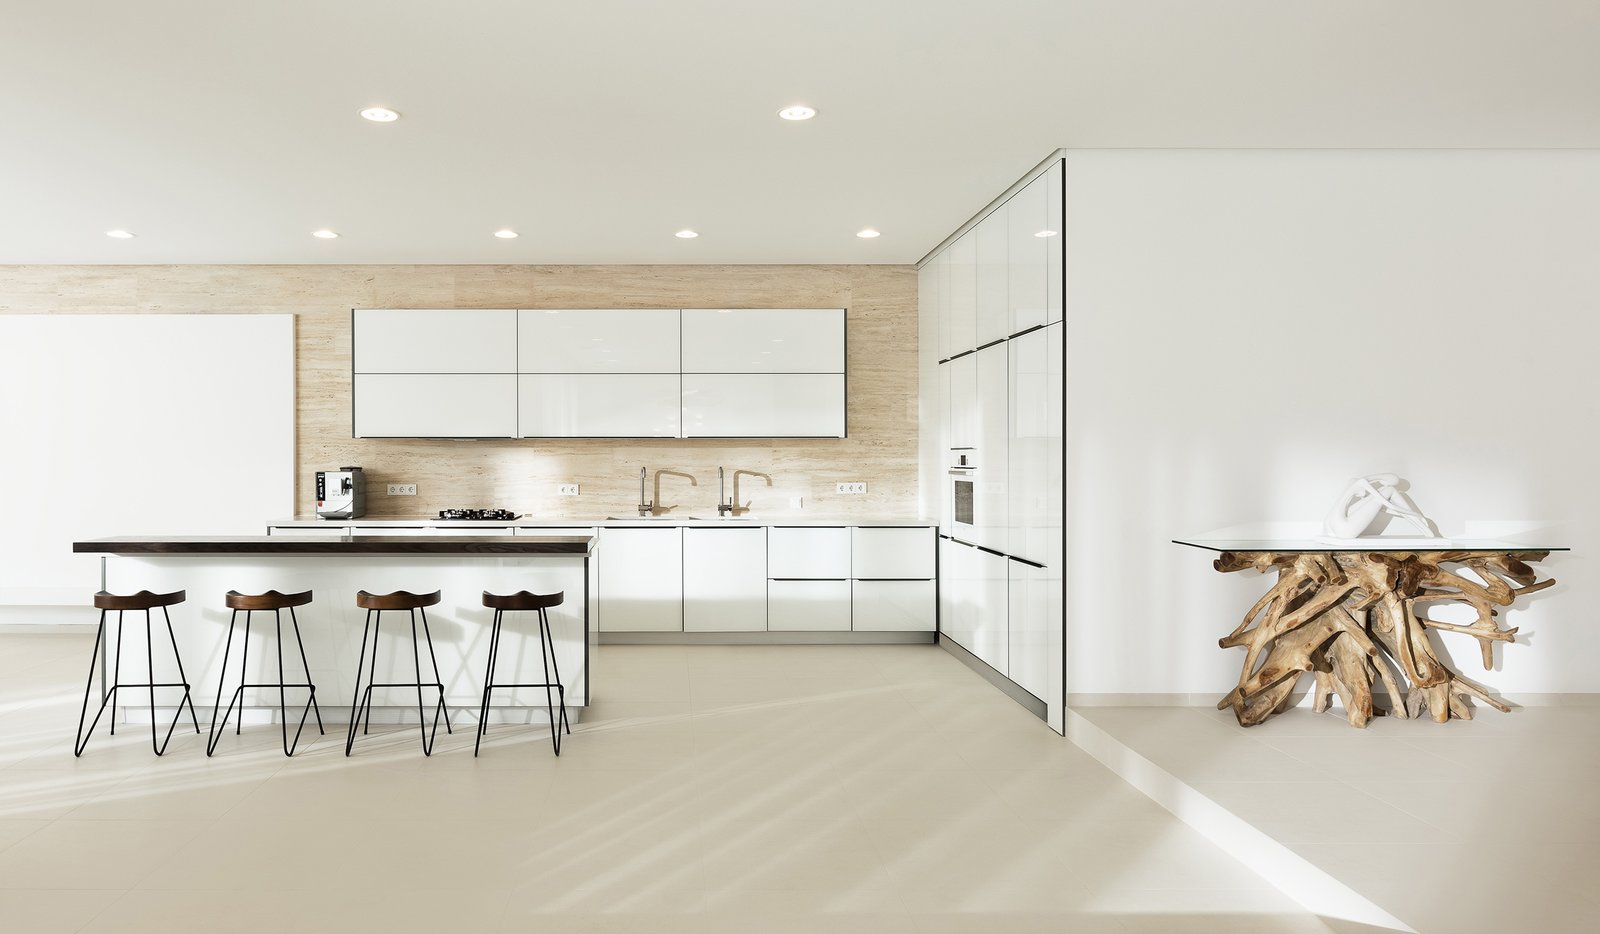 Kitchen, Quartzite, Stone, White, Wood, Metal, Travertine, Porcelain Tile, Stone Slab, Ceiling, Refrigerator, Wall Oven, Microwave, Dishwasher, Ice Maker, Cooktops, and Drop In WH Residence | M3 Architects  Best Kitchen Refrigerator Wood Ice Maker Quartzite Photos from WH Residence